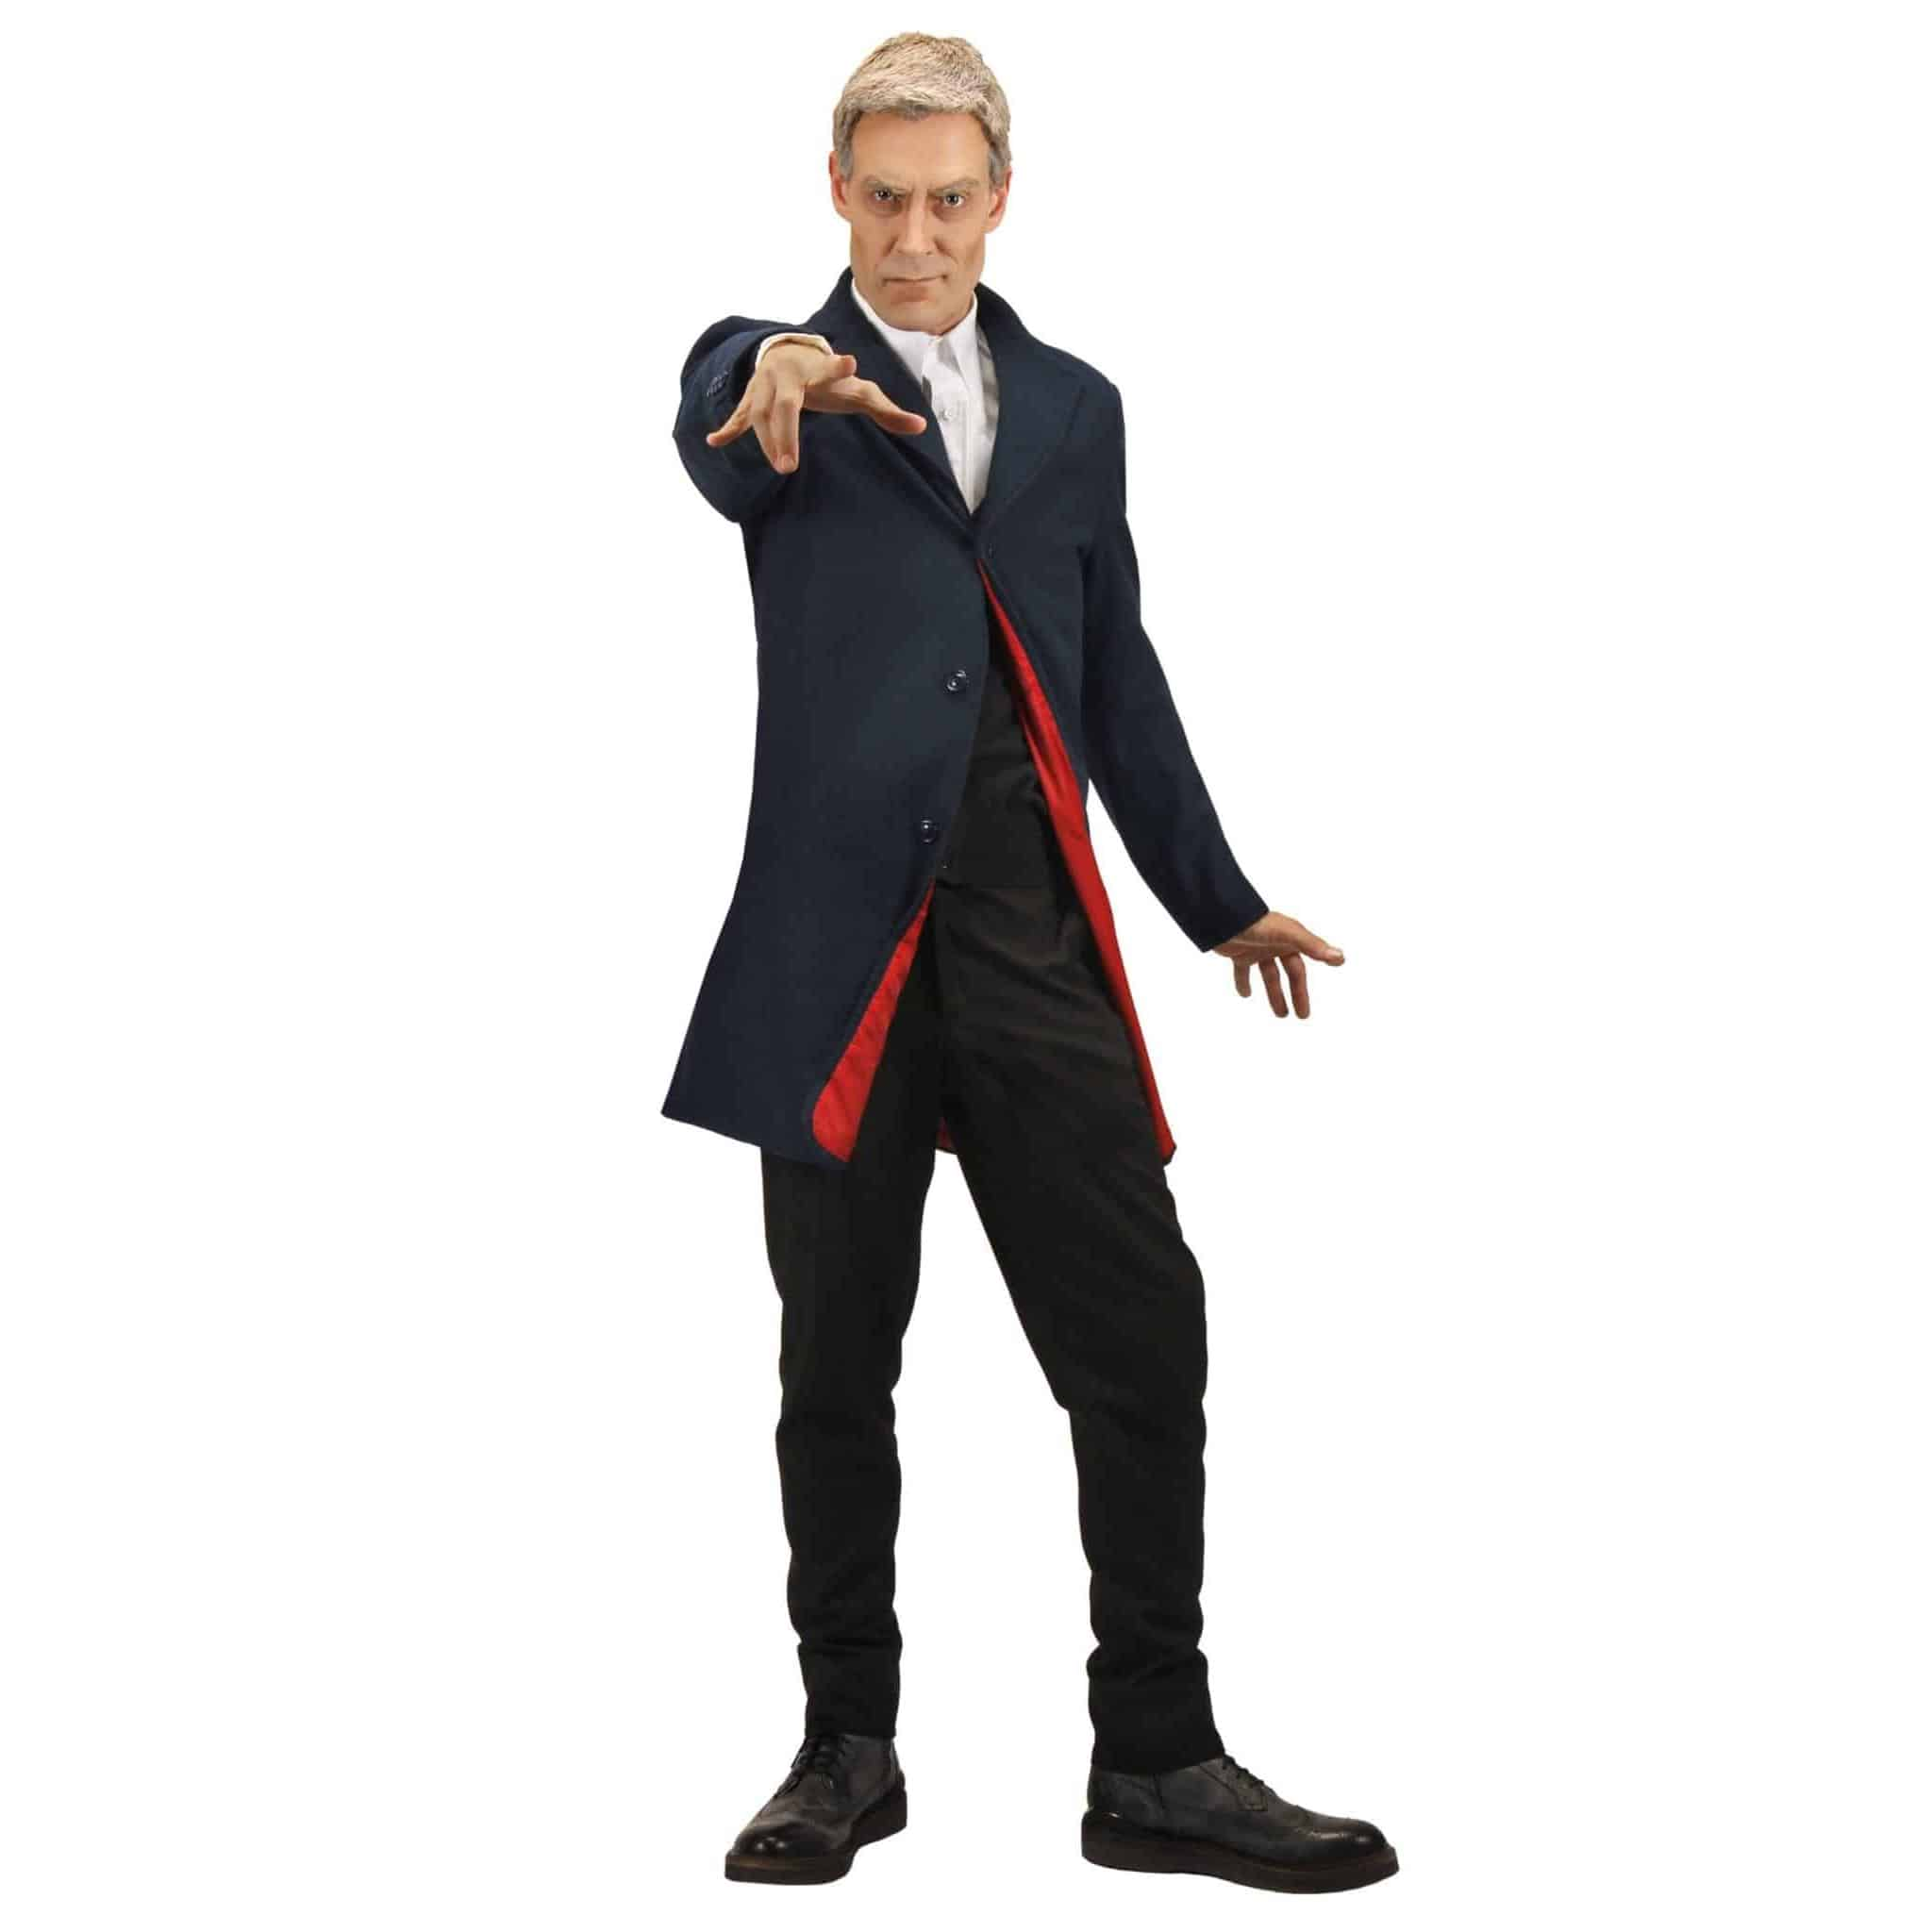 Dr. Who Costumes For Halloween